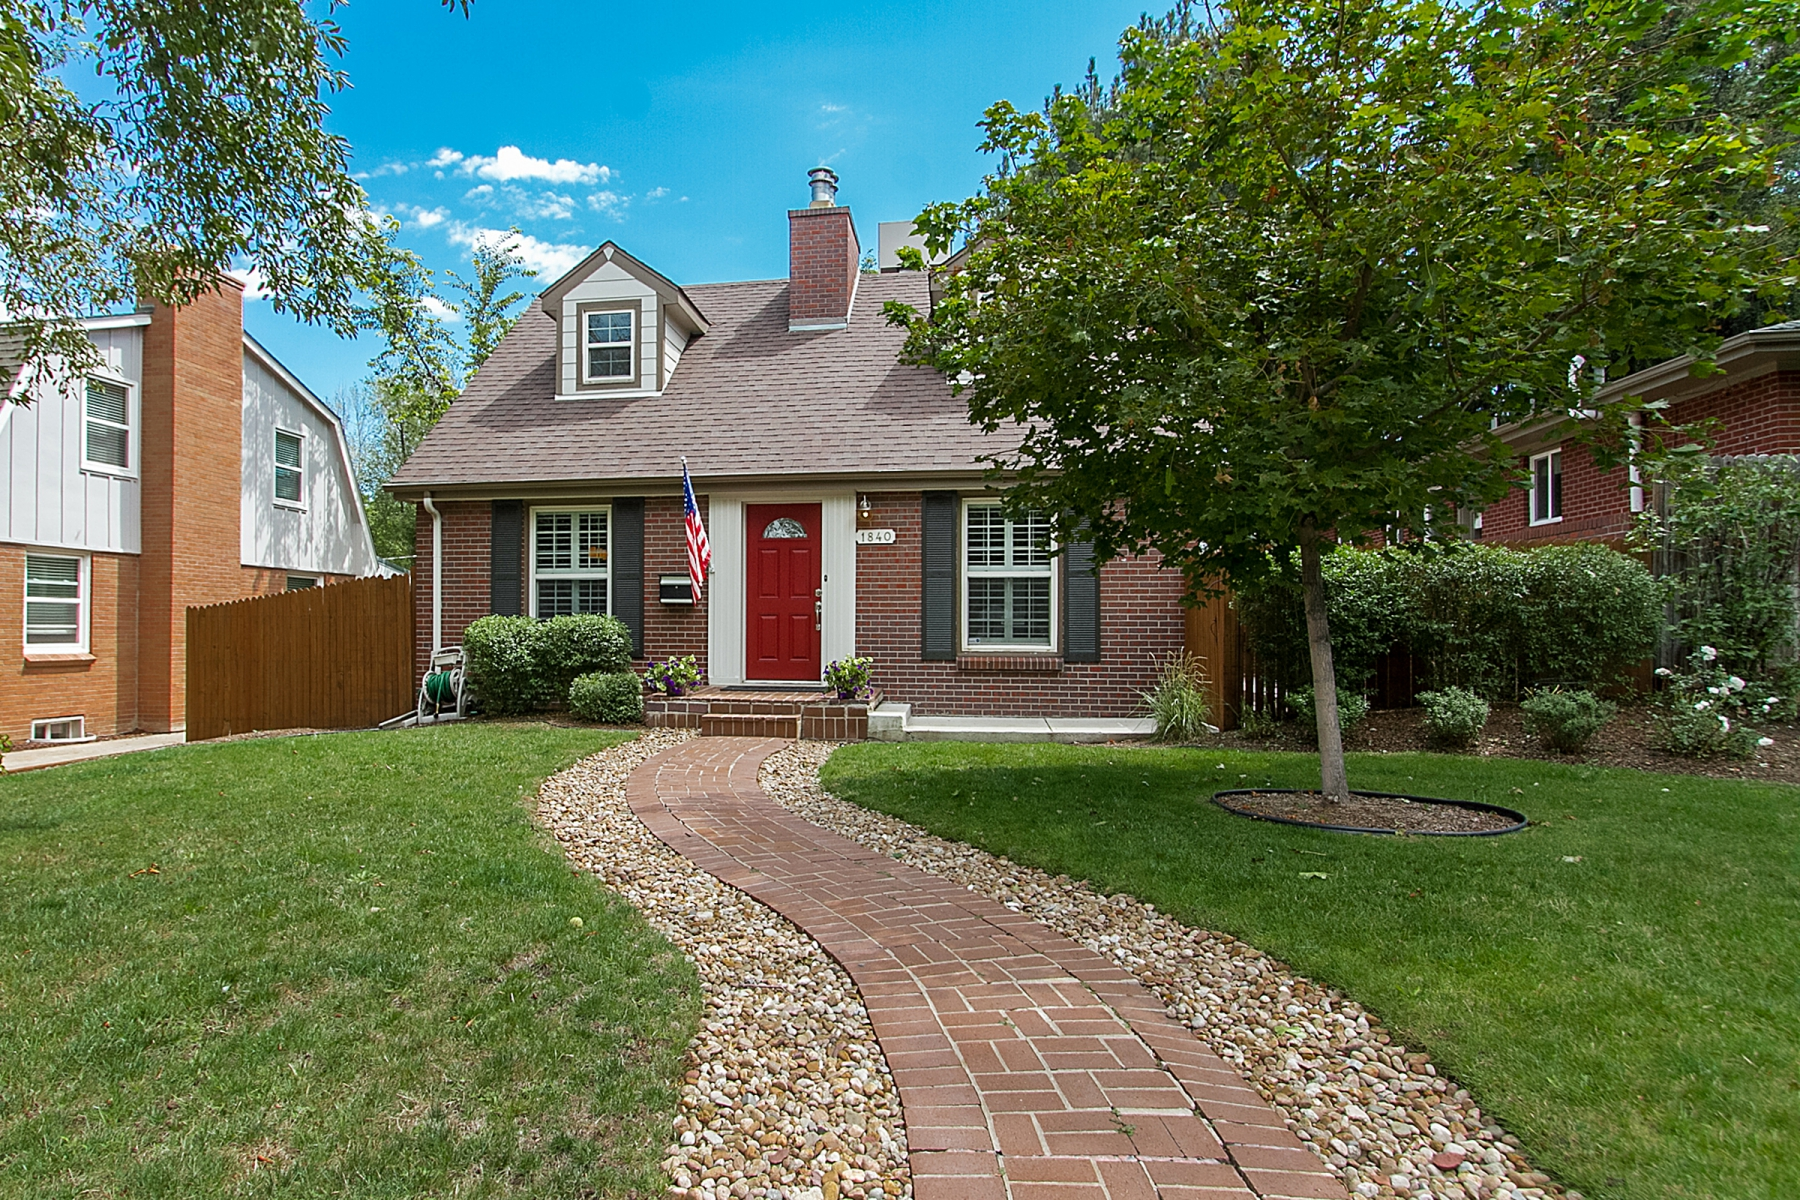 Single Family Home for Sale at Stunningly remodeled Cape Cod in University Park, ready for you to move in! 1840 South Clayton Street Denver, Colorado 80210 United States